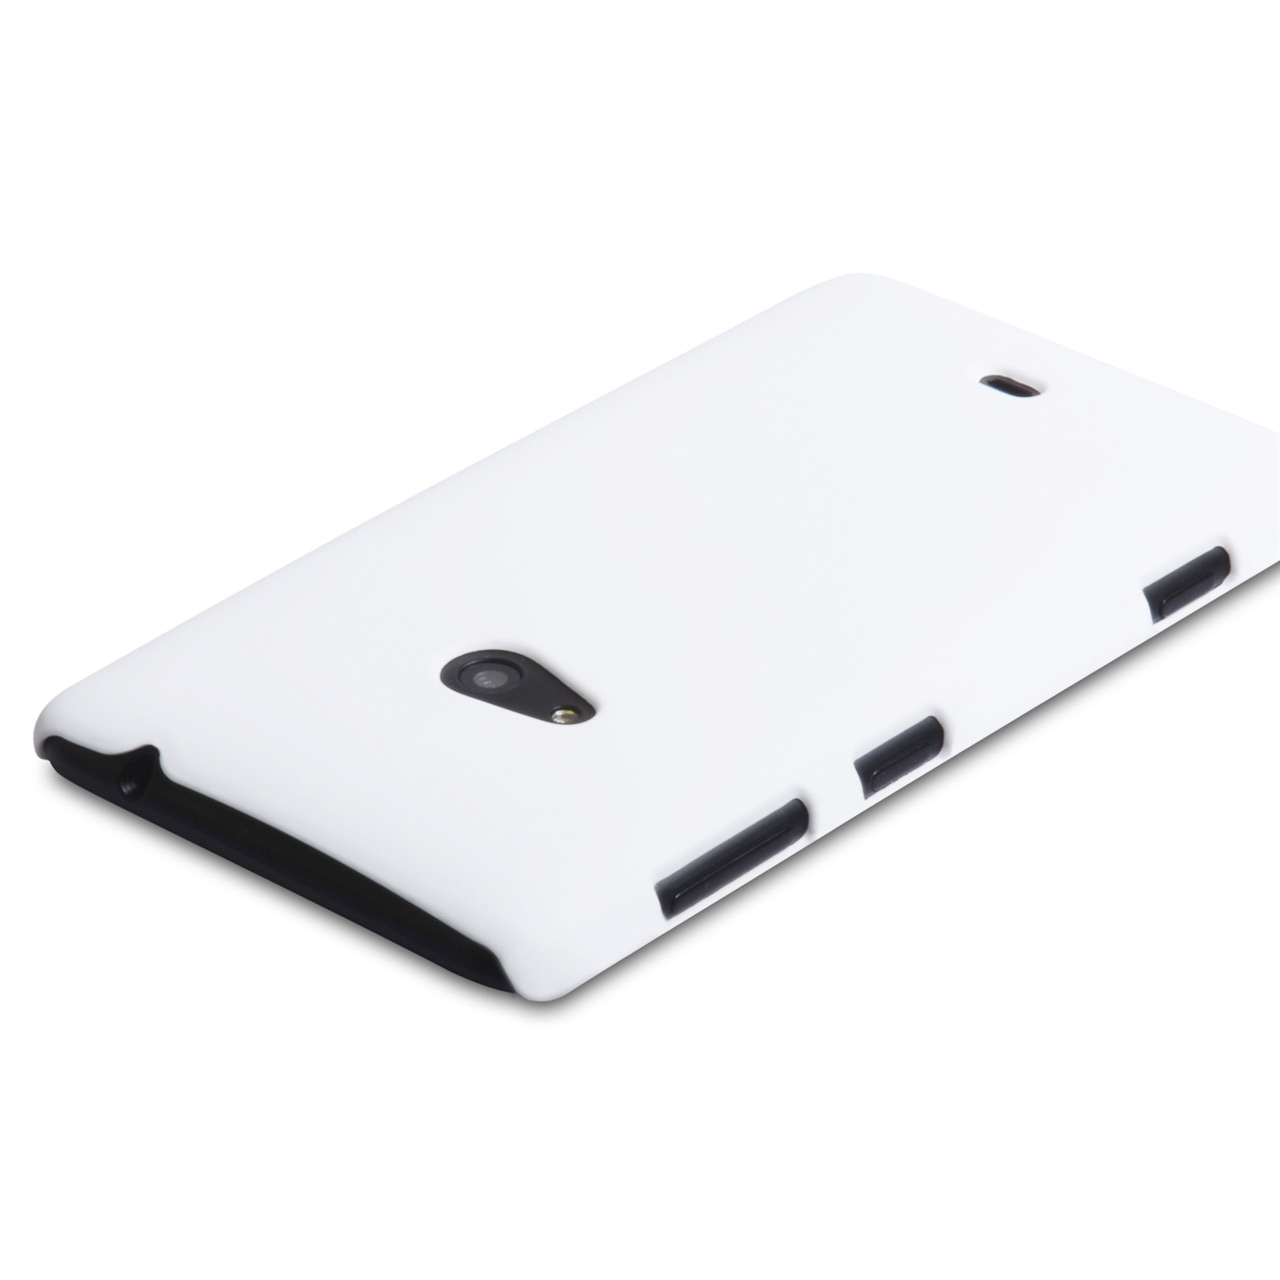 YouSave Accessories Nokia Lumia 625 Hybrid Hard Case - White